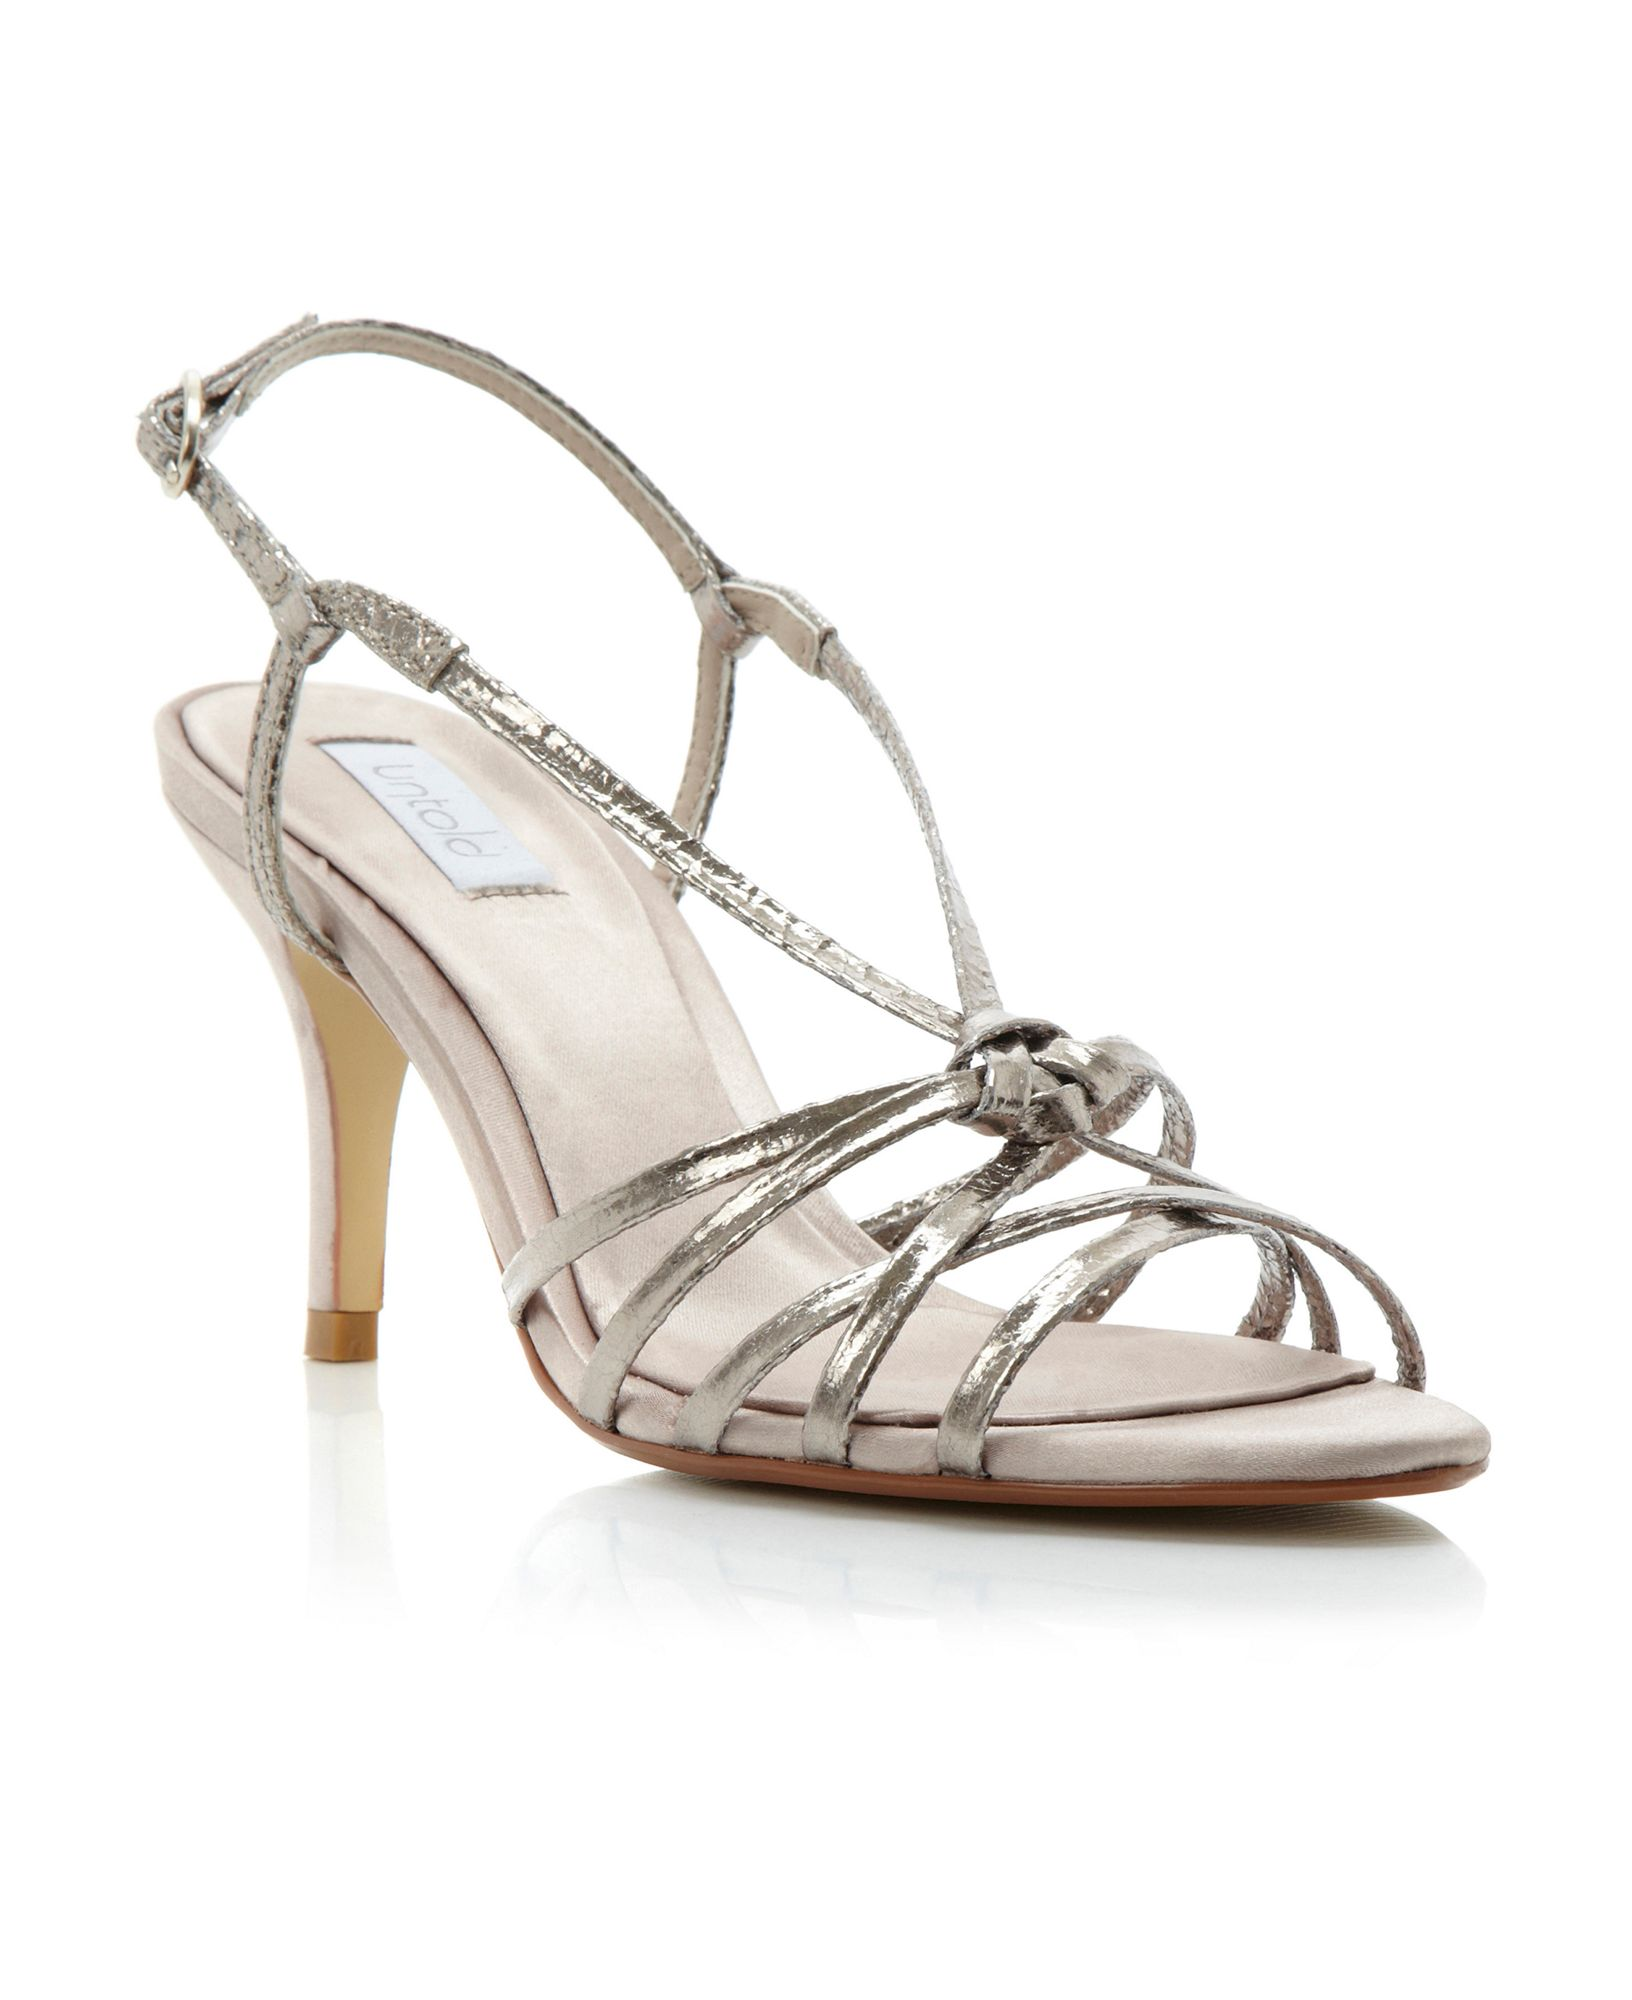 Silver Strappy Sandals Mid Heel